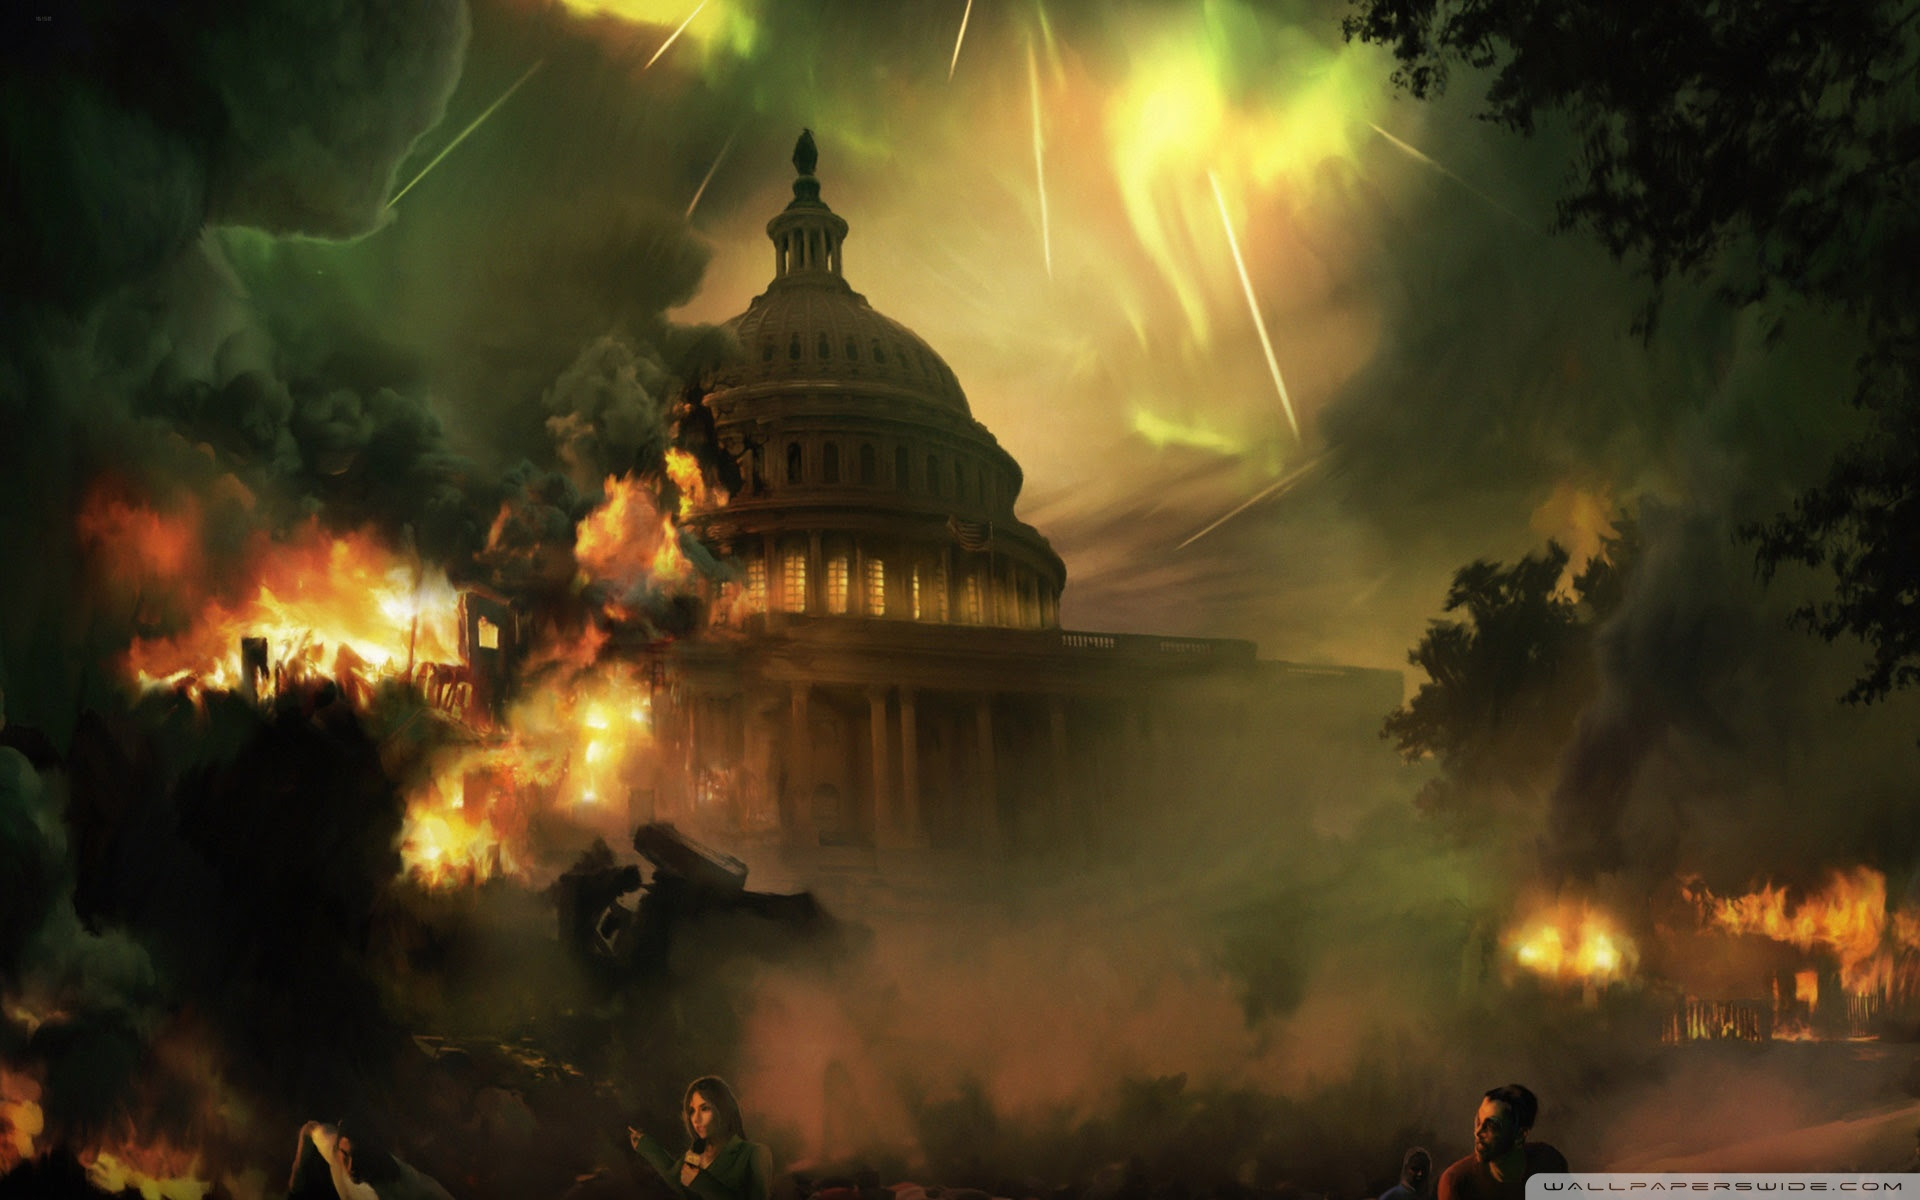 End Of The World Painting Ultra Hd Desktop Background Wallpaper